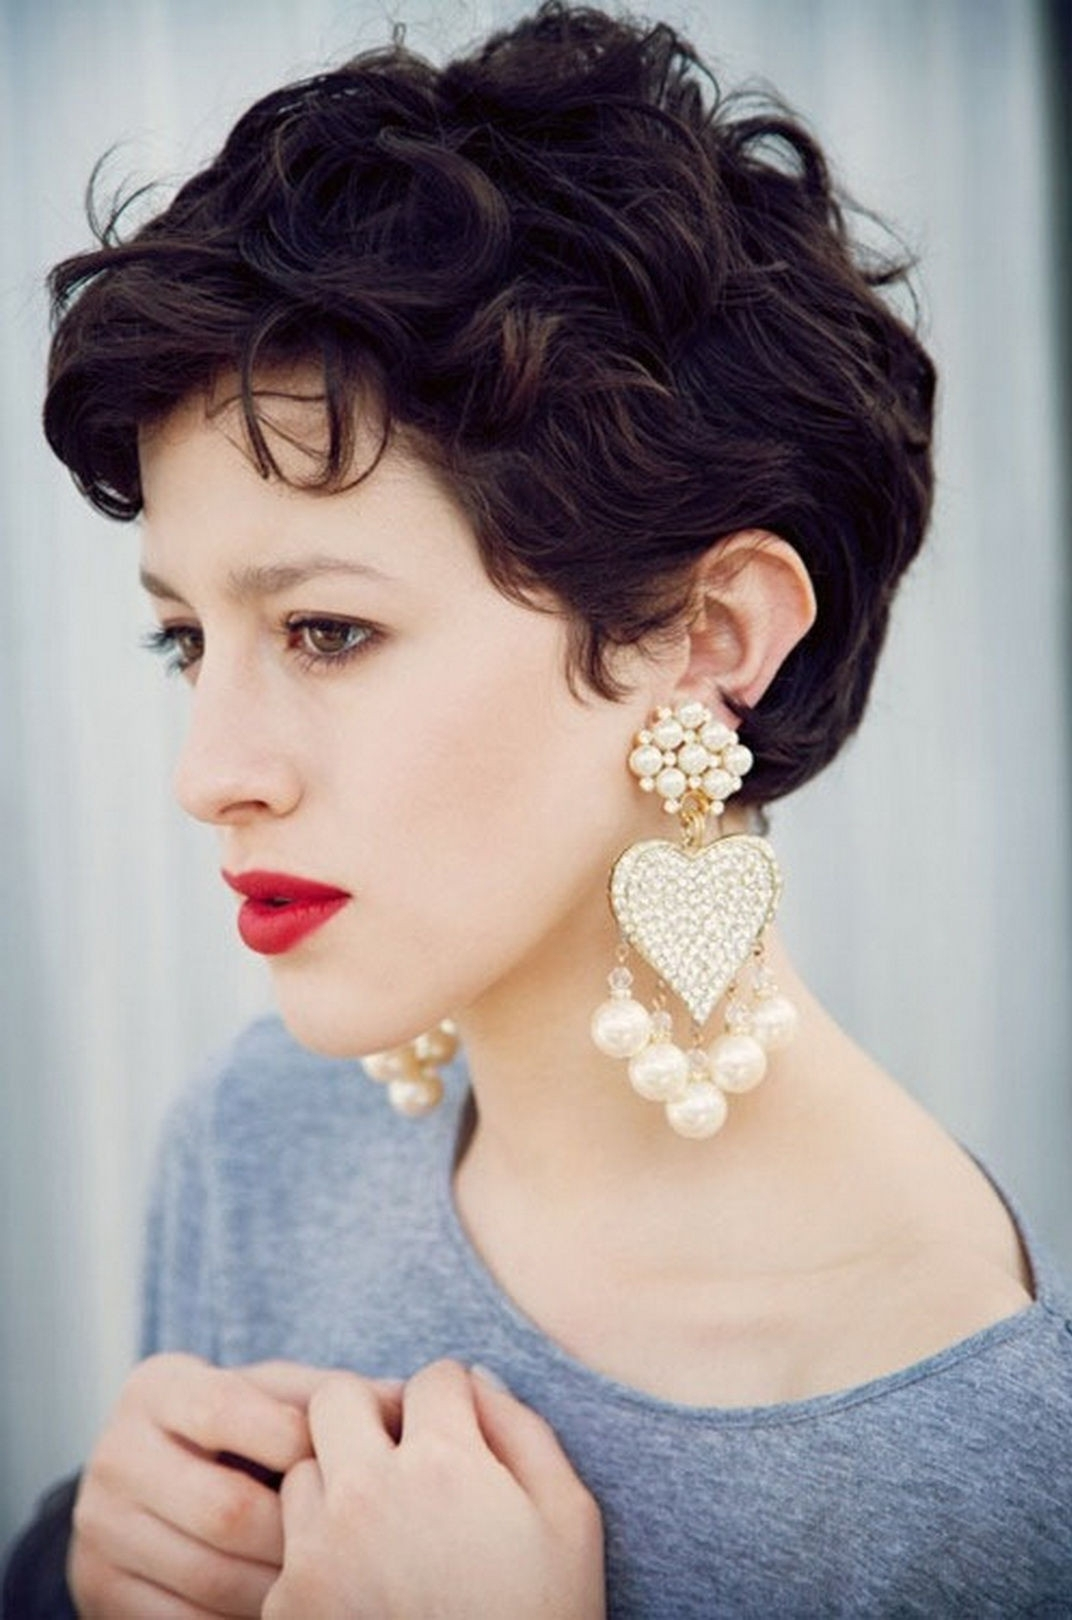 View Photos Of Short Pixie Hairstyles For Round Face Showing 13 Of